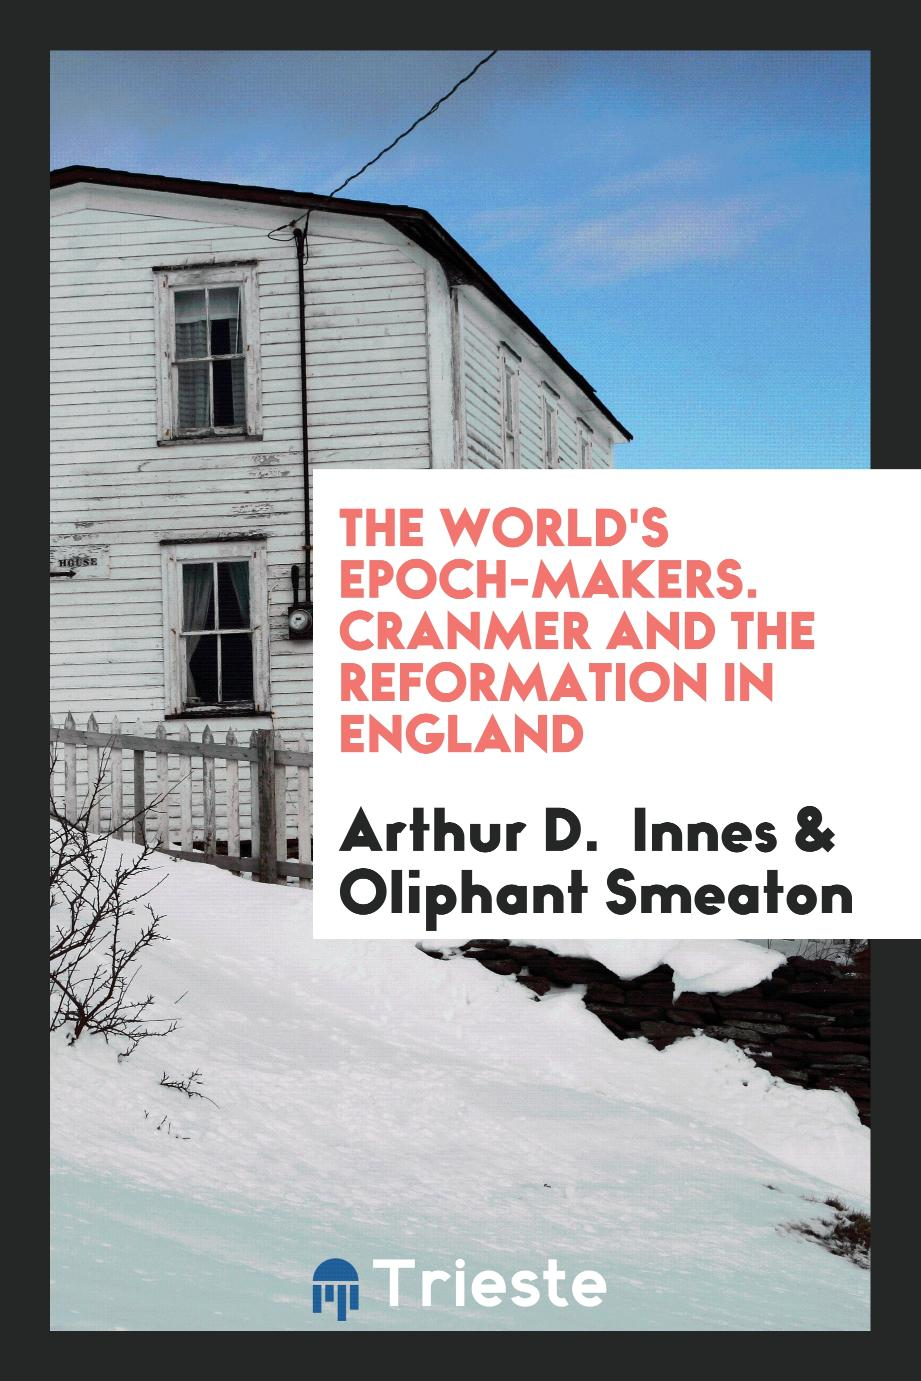 The World's Epoch-Makers. Cranmer and the Reformation in England